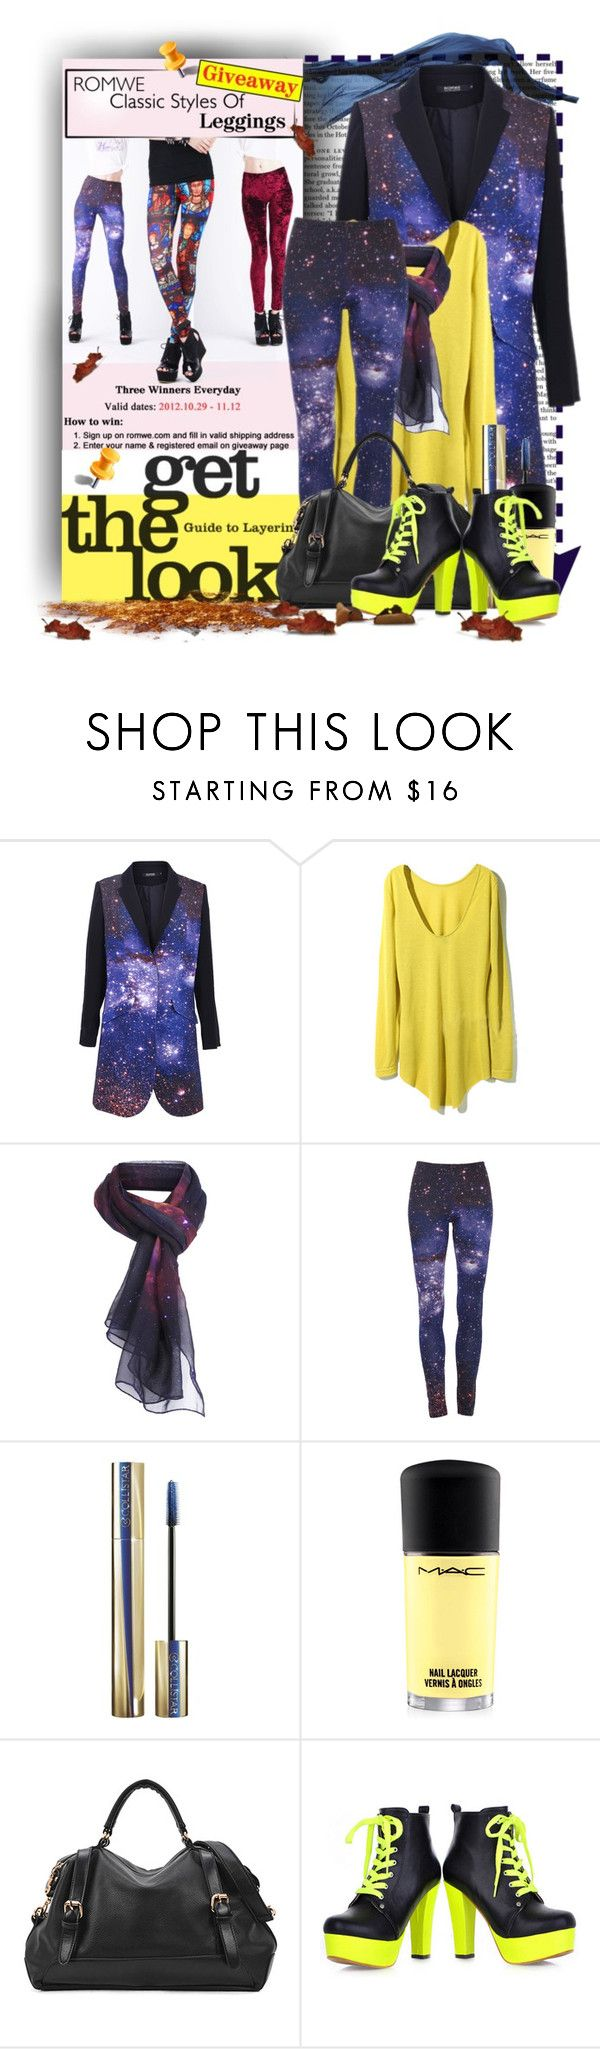 """Romwe Classic Styles Of Romwe Leggings Giveaway"" by keti-lady ❤ liked on Polyvore featuring Nicki Minaj, Collistar, MAC Cosmetics, ankle boots, galaxy print, scarf prints, leggings, handbags, romwe and coats"